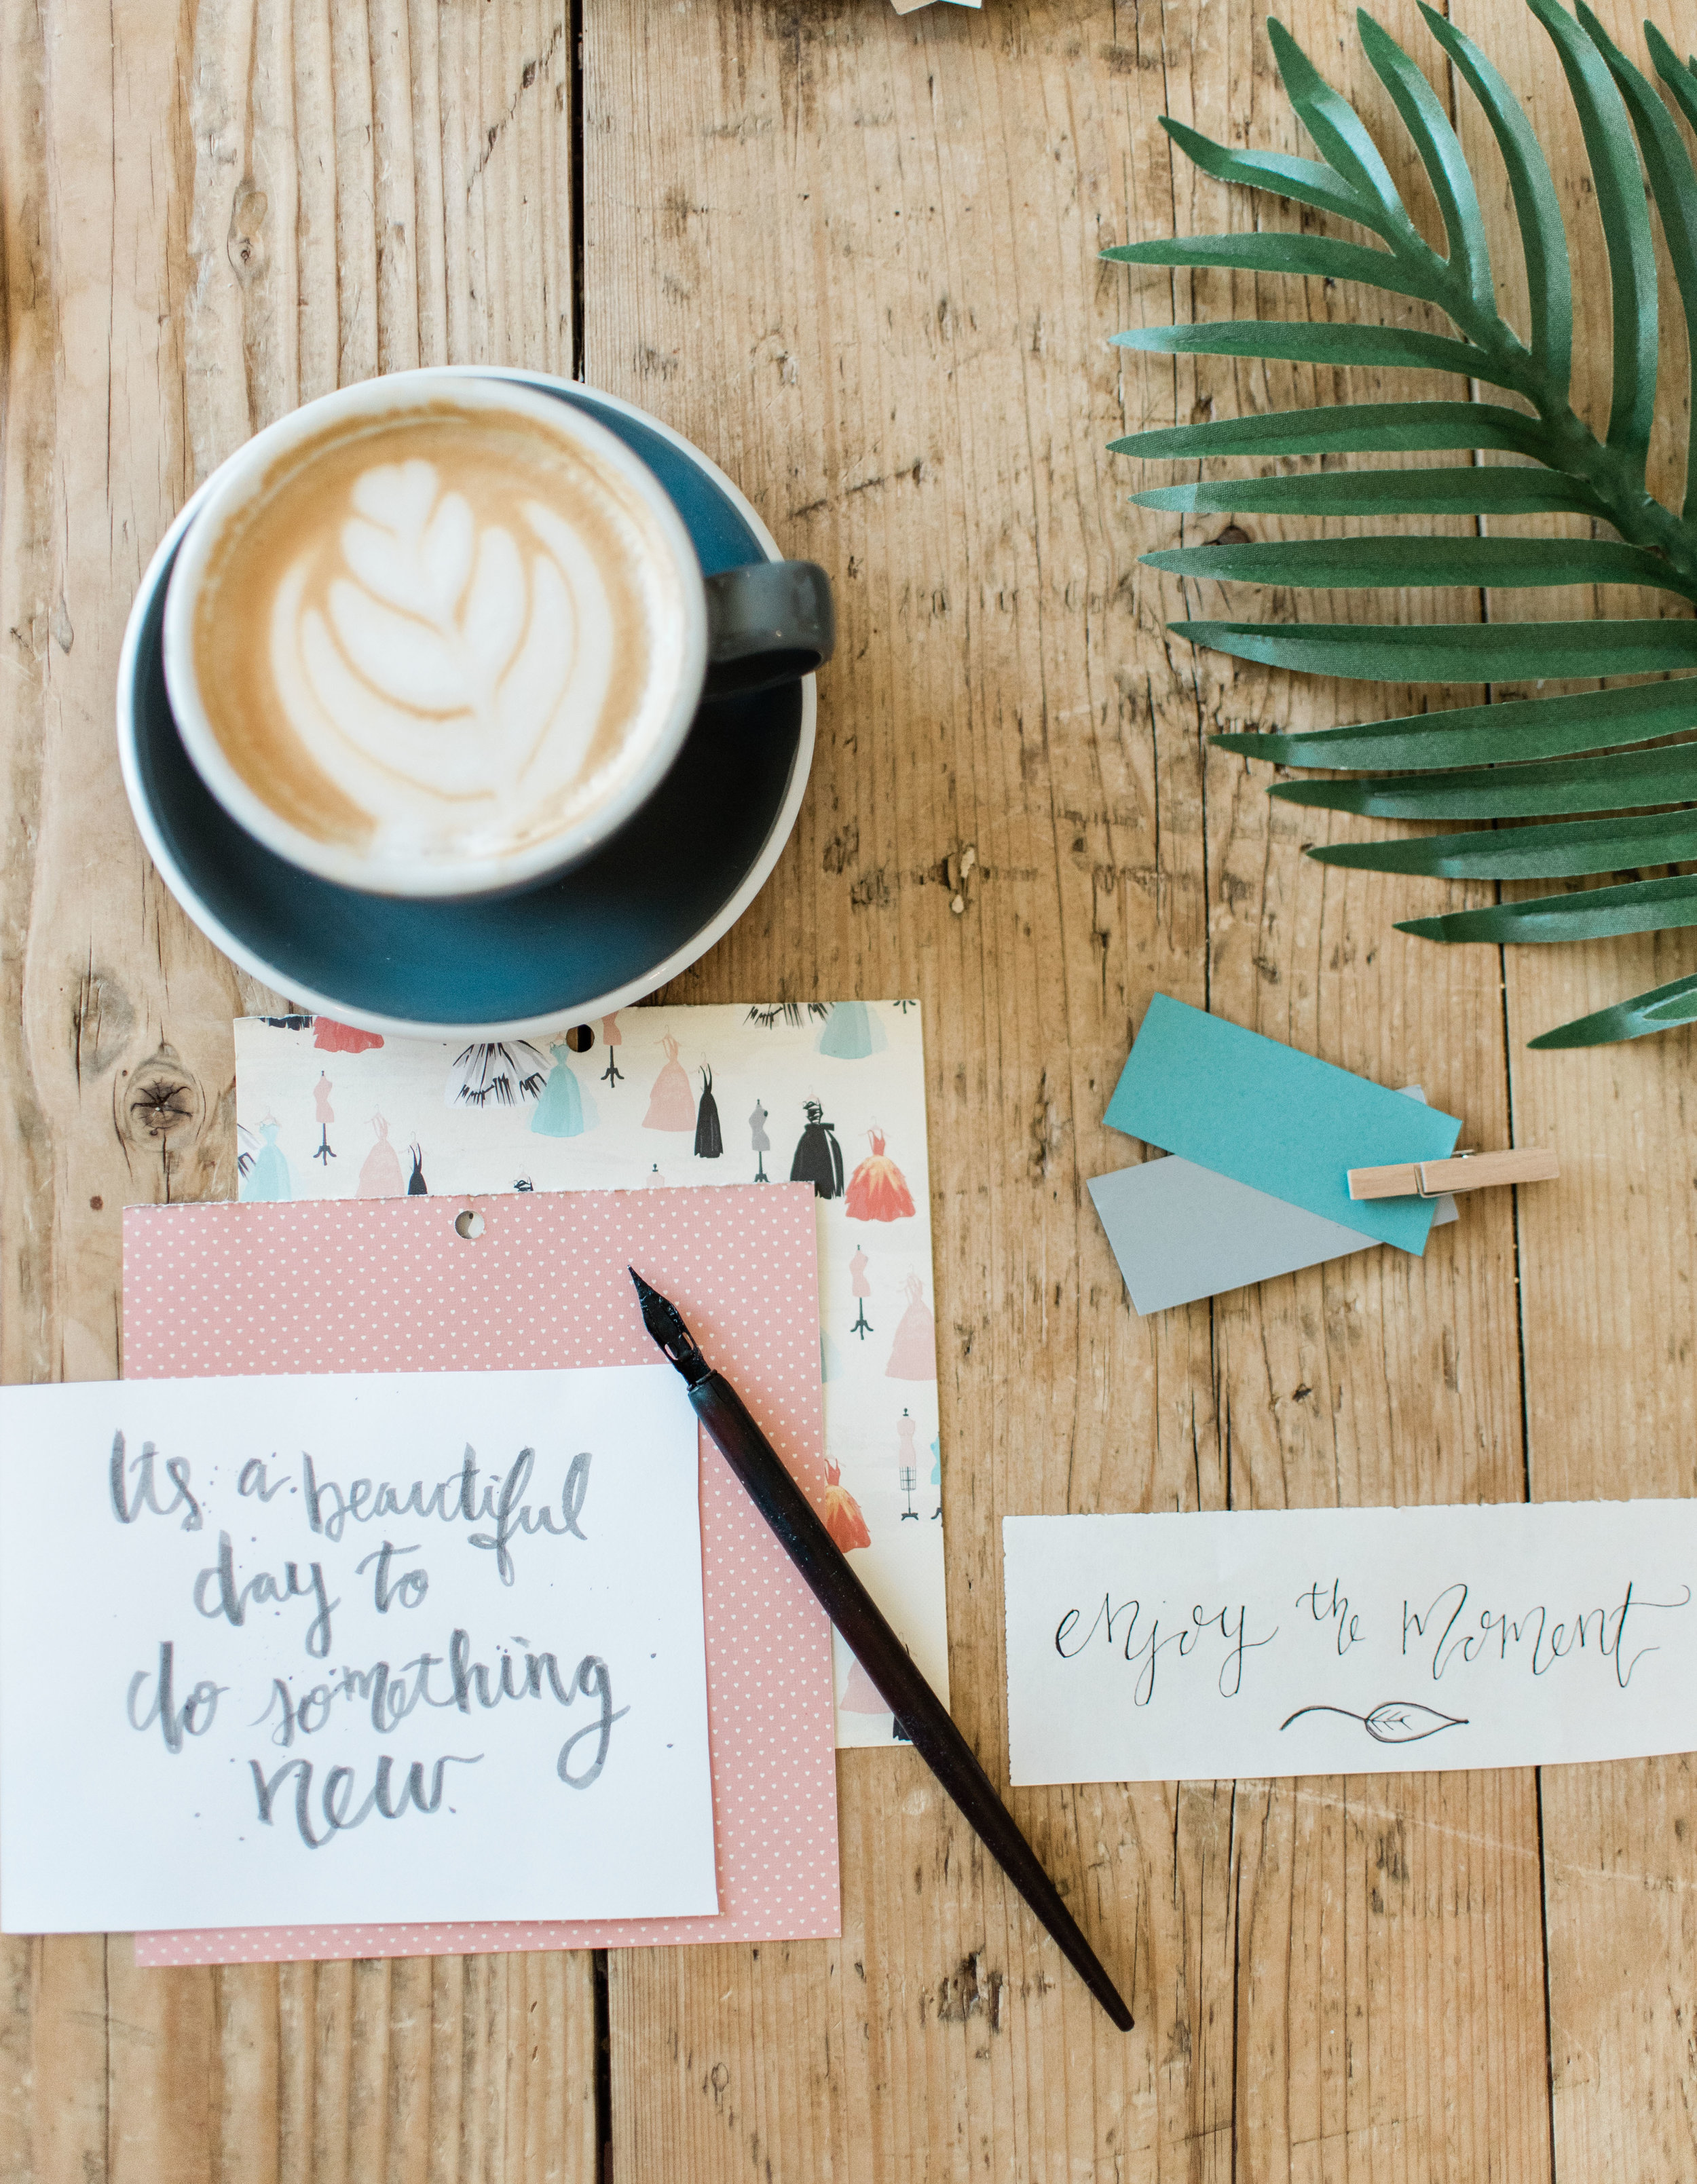 Mood boards are always so inspiring for me, espcially when i get to throw in some calligraphy! There is nothing like a good cup of coffee and message to inspire a day!